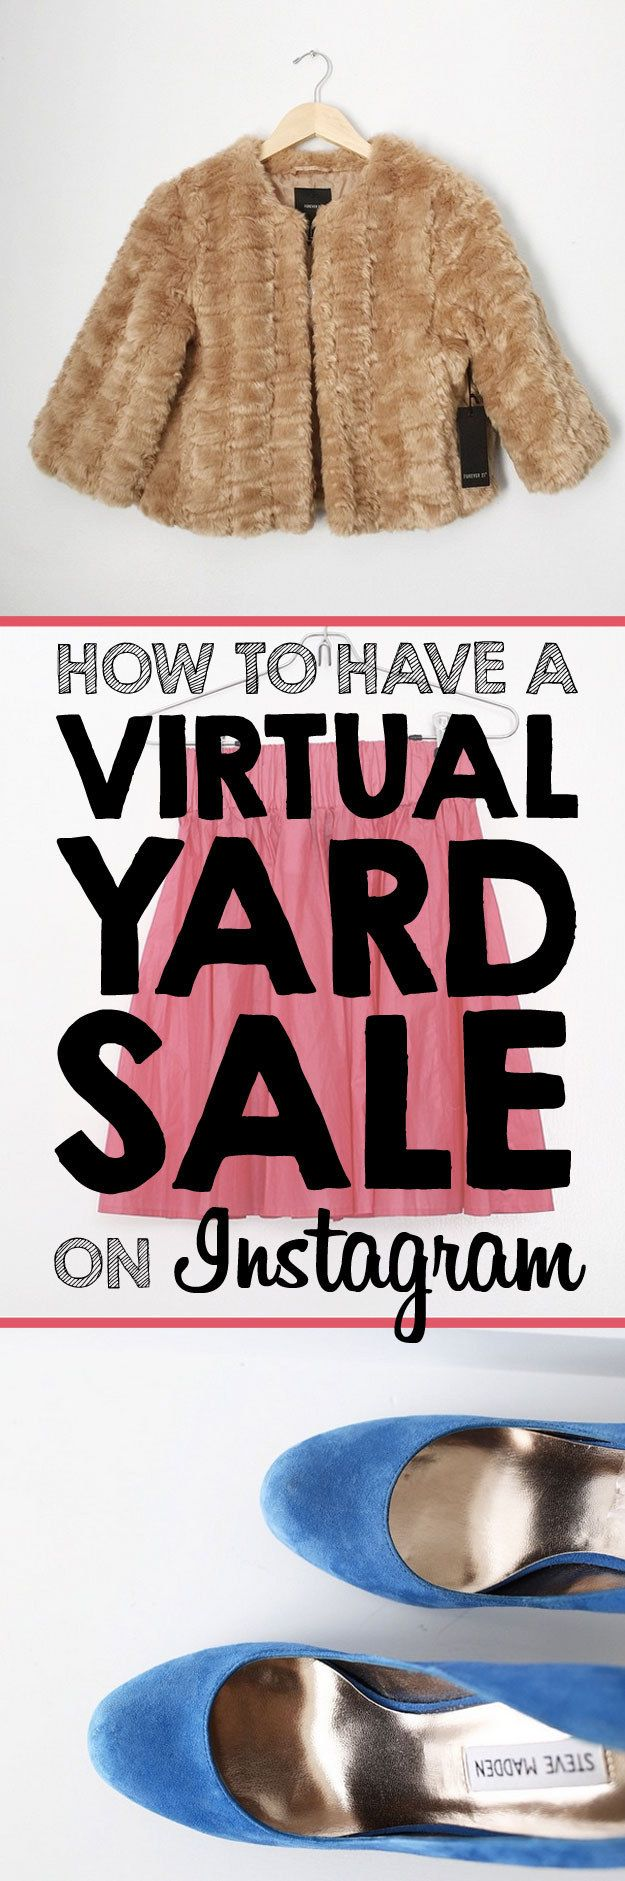 How to clean out your clothes closet & make extra money on instagram! Before you take things to consignment or ebay try an instagram yard sale!